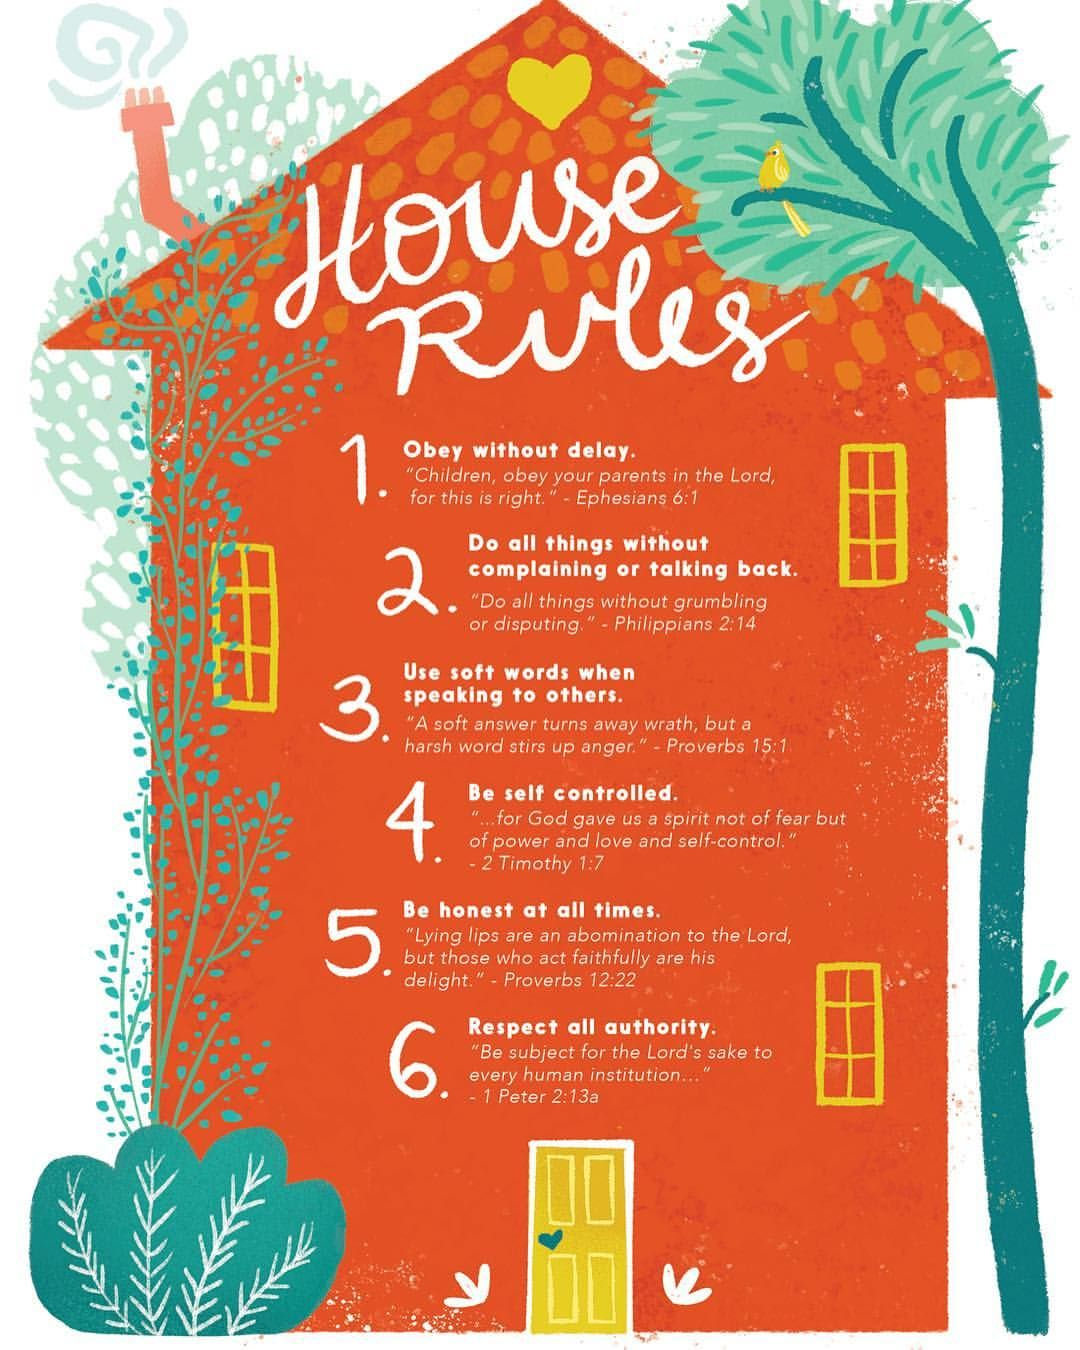 Love Our Free Printable Of House Rules From Bear